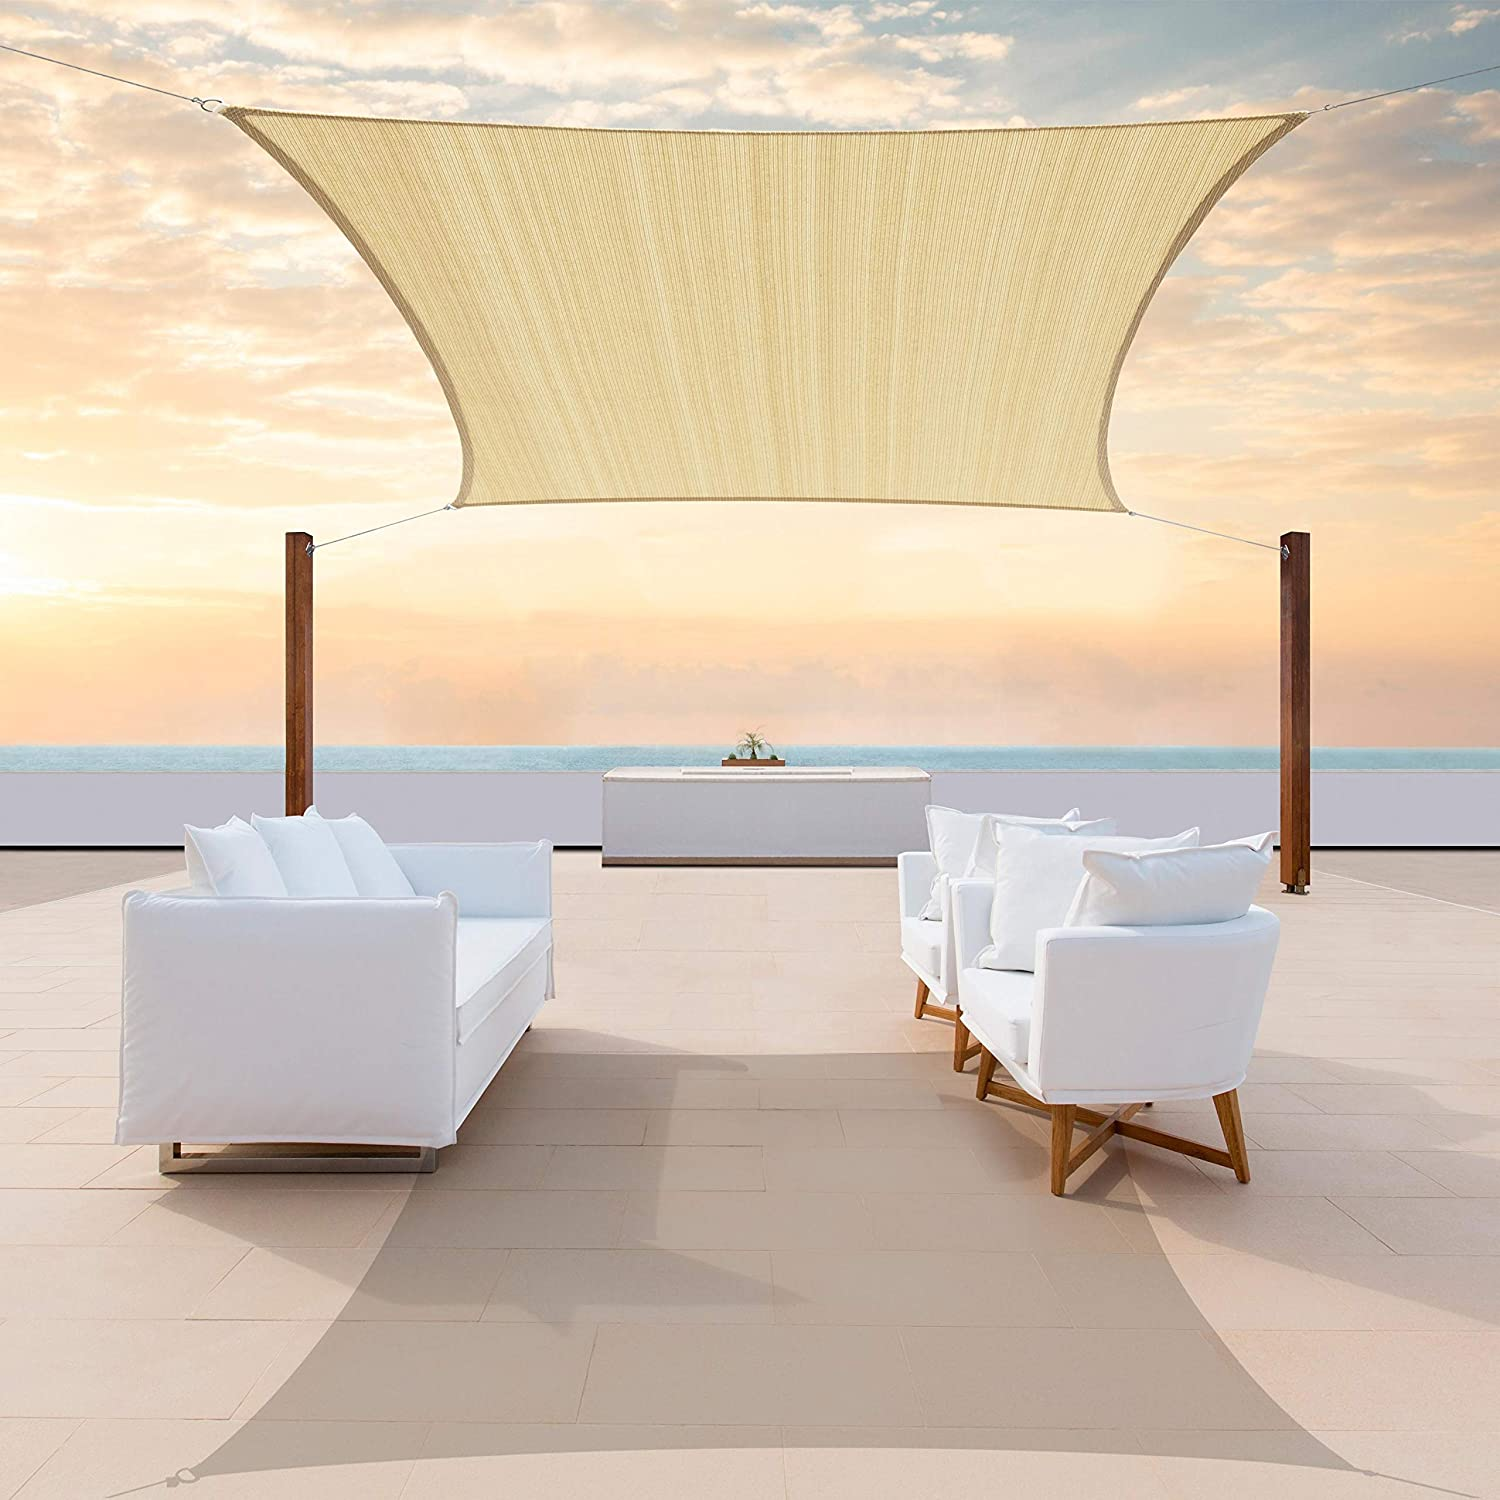 ColourTree 14' Max 86% Ranking TOP18 OFF x 16' Beige Rectangle Awnin Sun Shade Canopy Sail